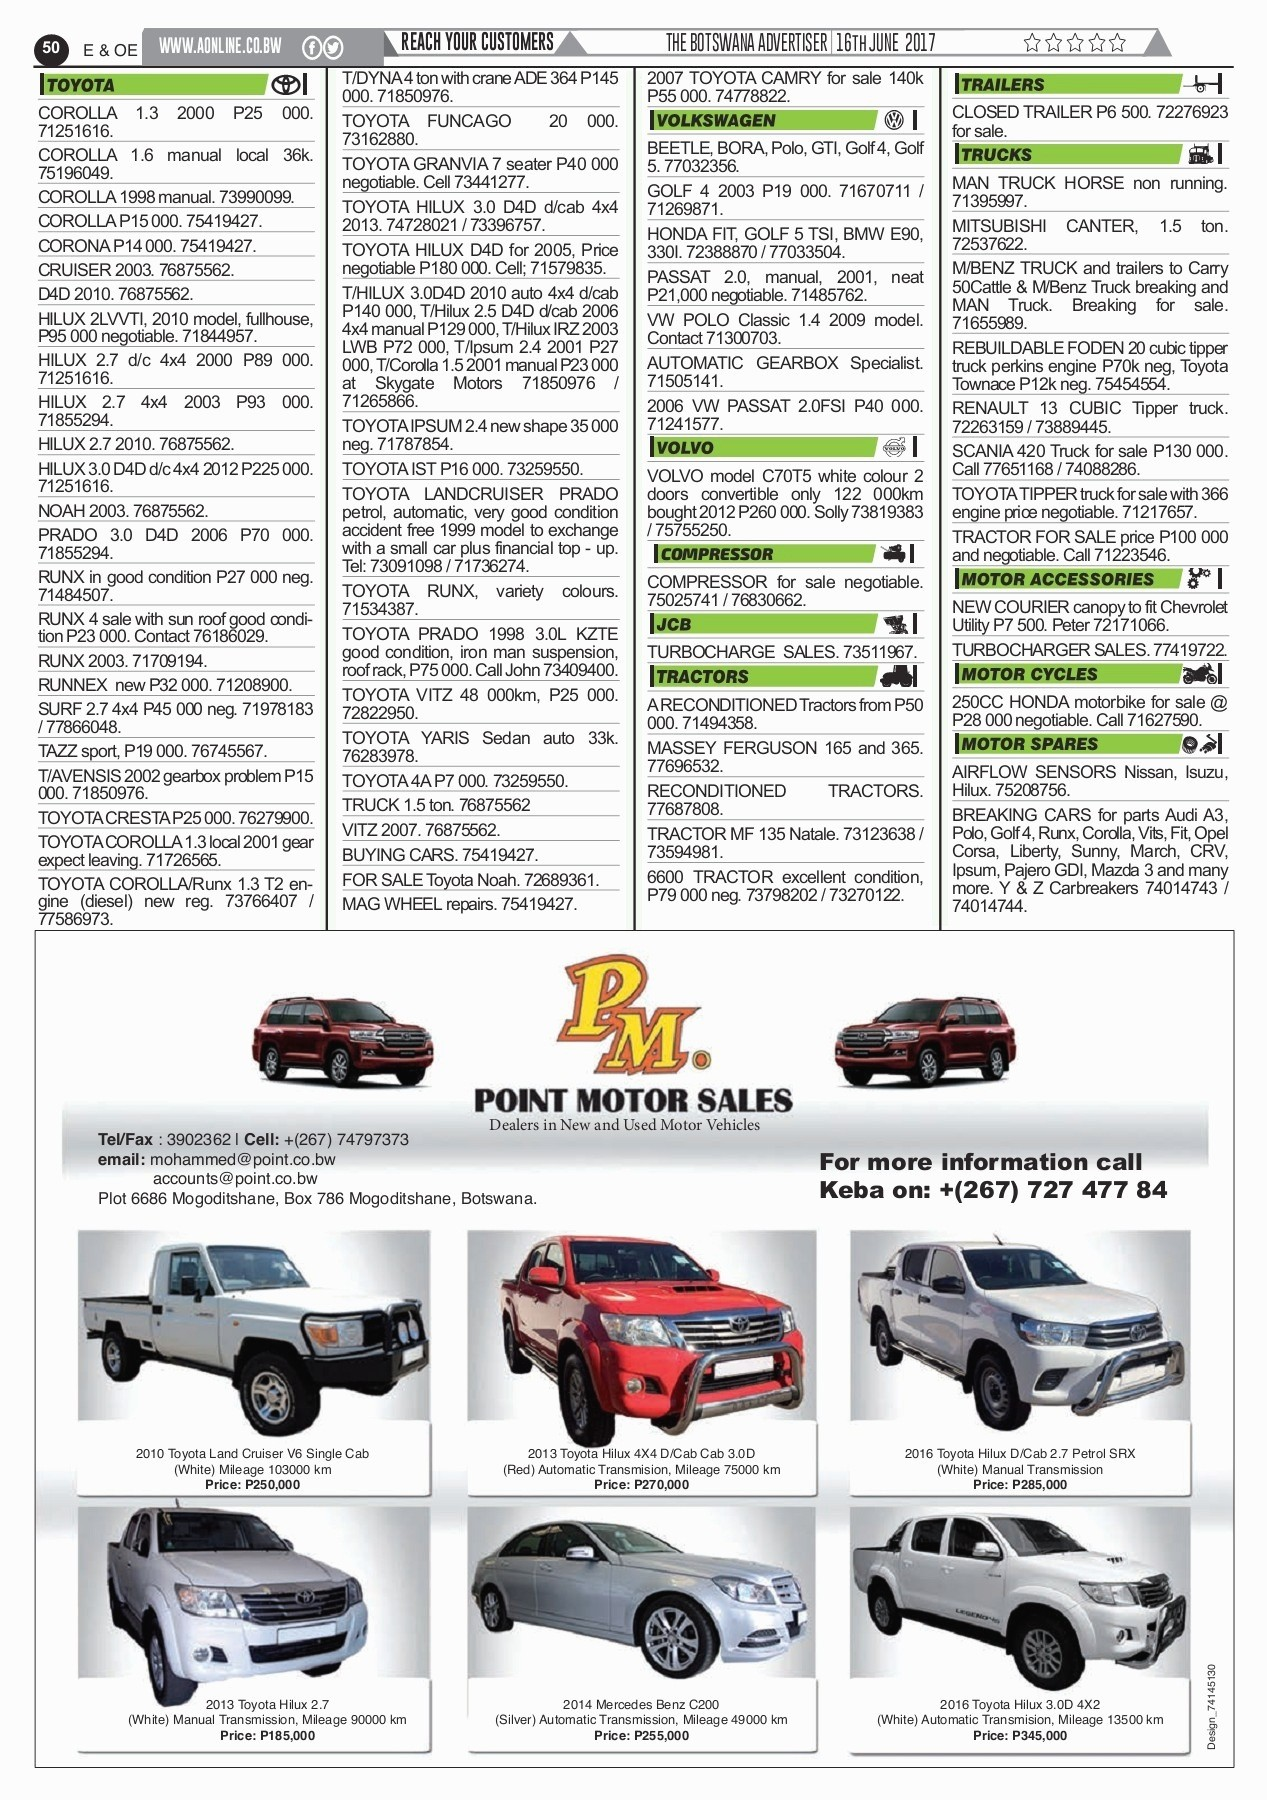 Auto Trans Diagram toyota Transmissions New toyota Corolla Engine Diagram New Automatic Of Auto Trans Diagram